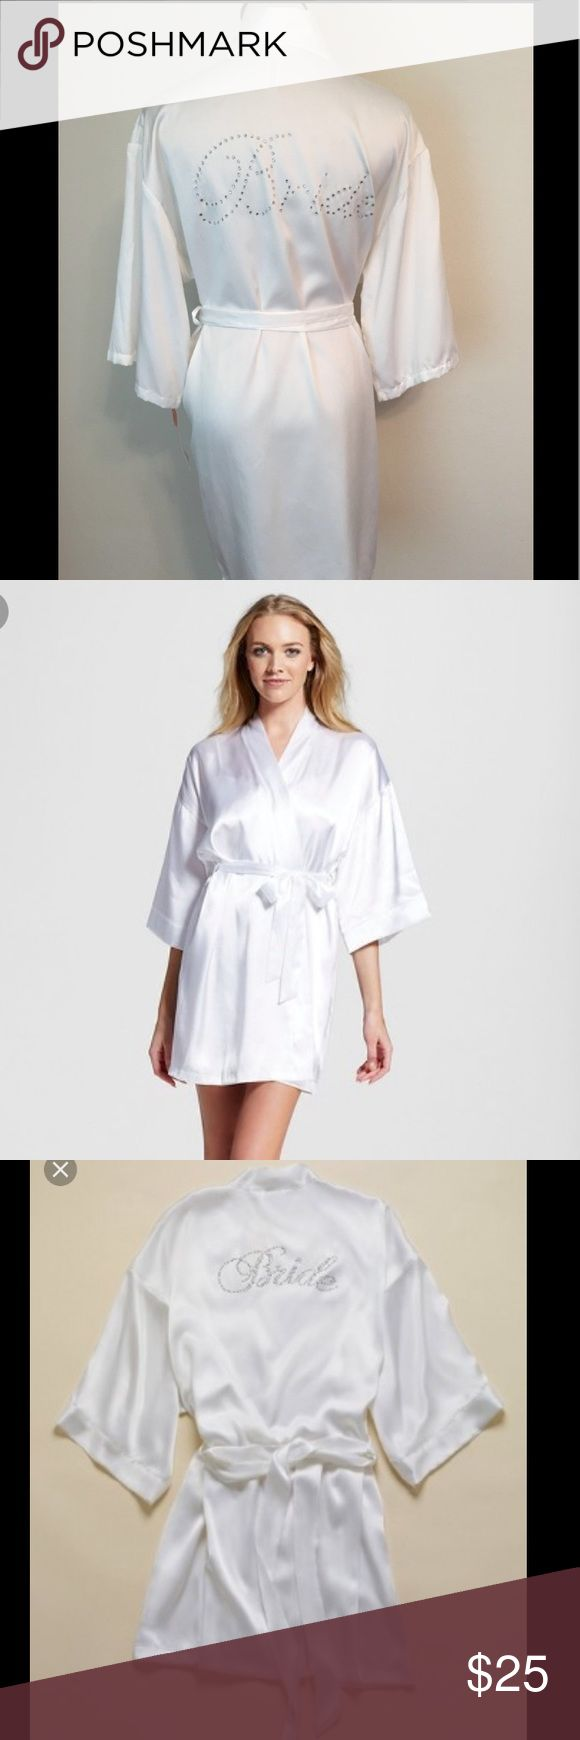 """Bridal 👰🏼 Bride 👰🏽 Satin Bath Robe 👰🏻 NWOT Beautiful white bridal bath robe. Only wore for a few minutes and then hand-washed & hung dry. Like new condition. Beautiful rhinestones on the back that spell out """"Bride"""". Would be adorable for wedding getting ready photos w/your bridesmaids or even to be worn on the honeymoon! Tag size XL/XXL I am normally a size 6, and this was oversized but I was able to cinch the waist with the satin tie so it didn't drown me. I would say this would be a…"""